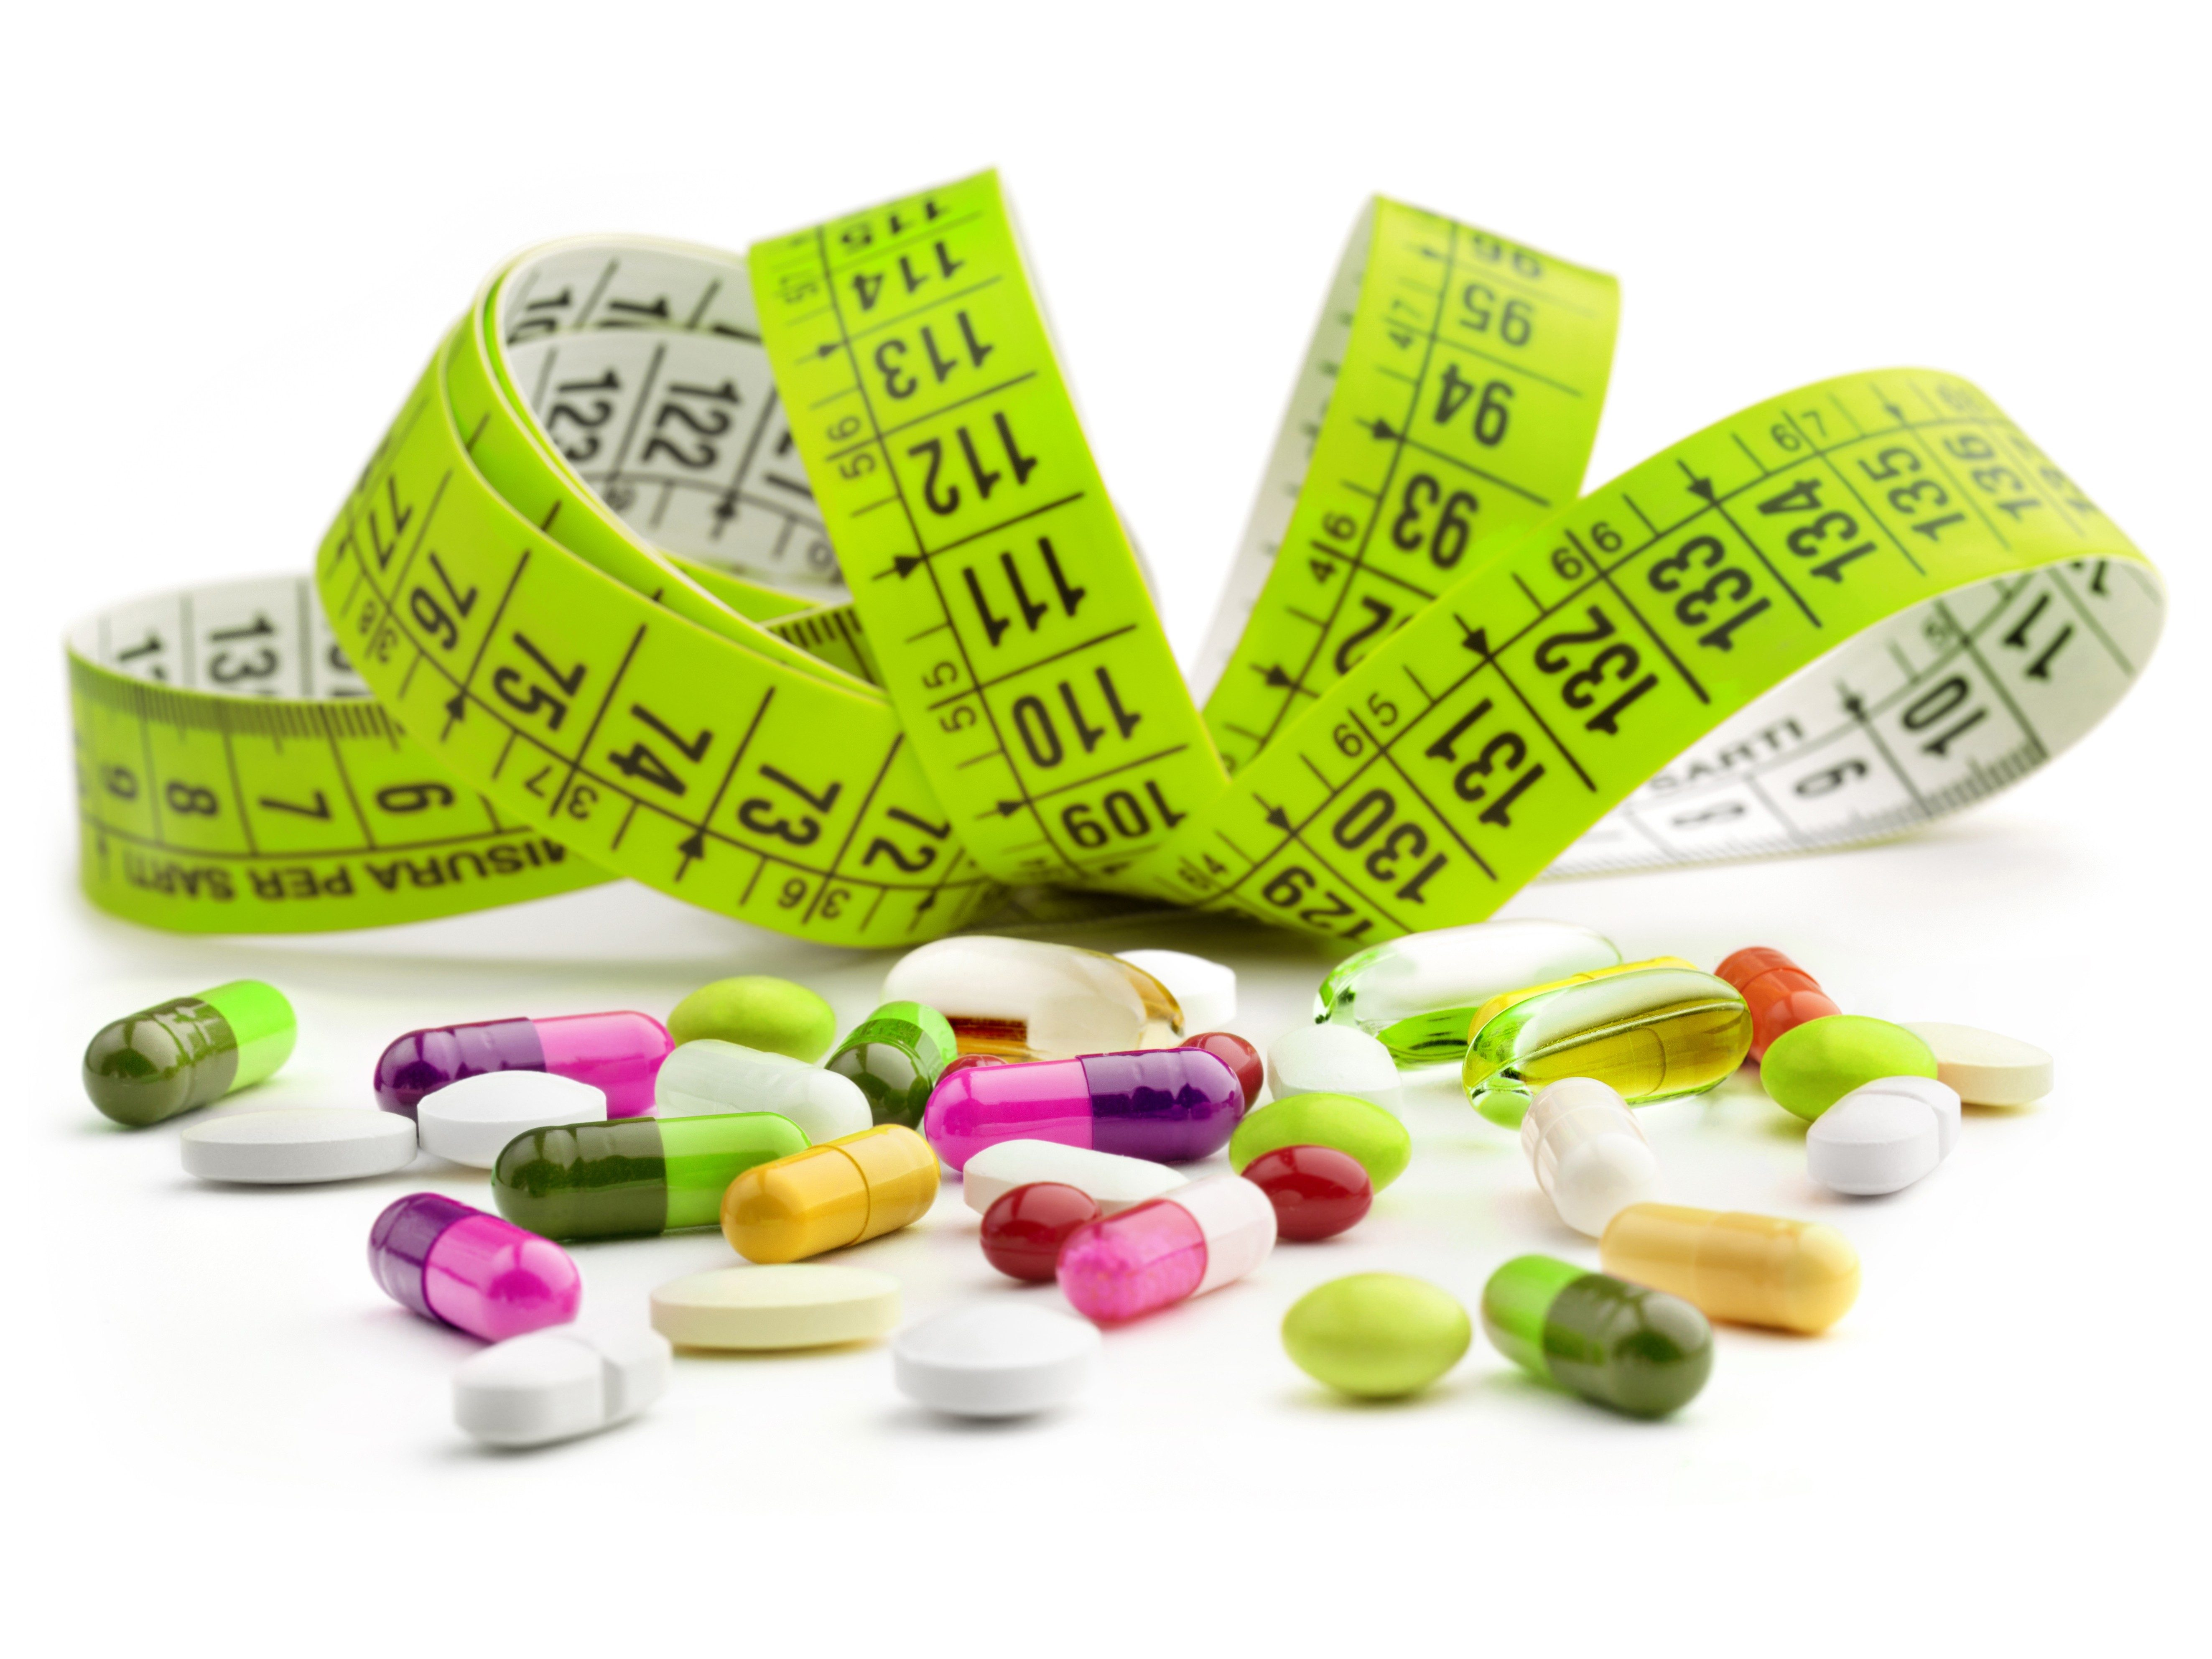 1. Supplements are not weight loss miracles.